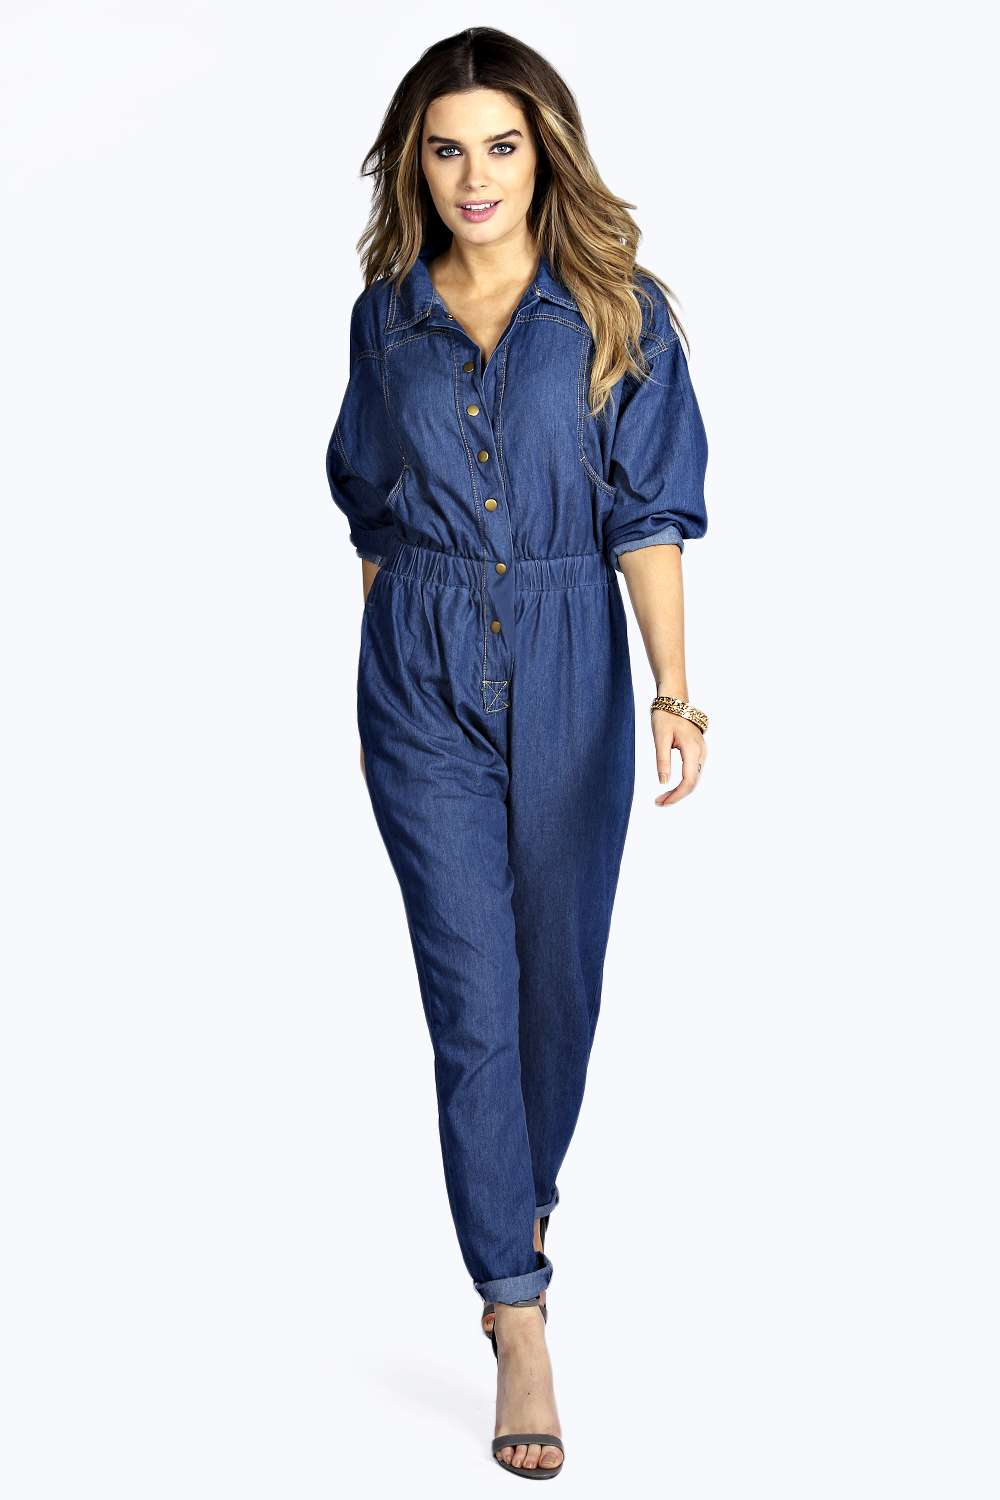 Lastest Further It Gives Her A Flattering Look And Silhouette Which Remains A Distant Dream, Simply, In Case Of Wearing Any Other Summer Womens Clothing  The Capri Jumpsuit In Strapless Model Even For A